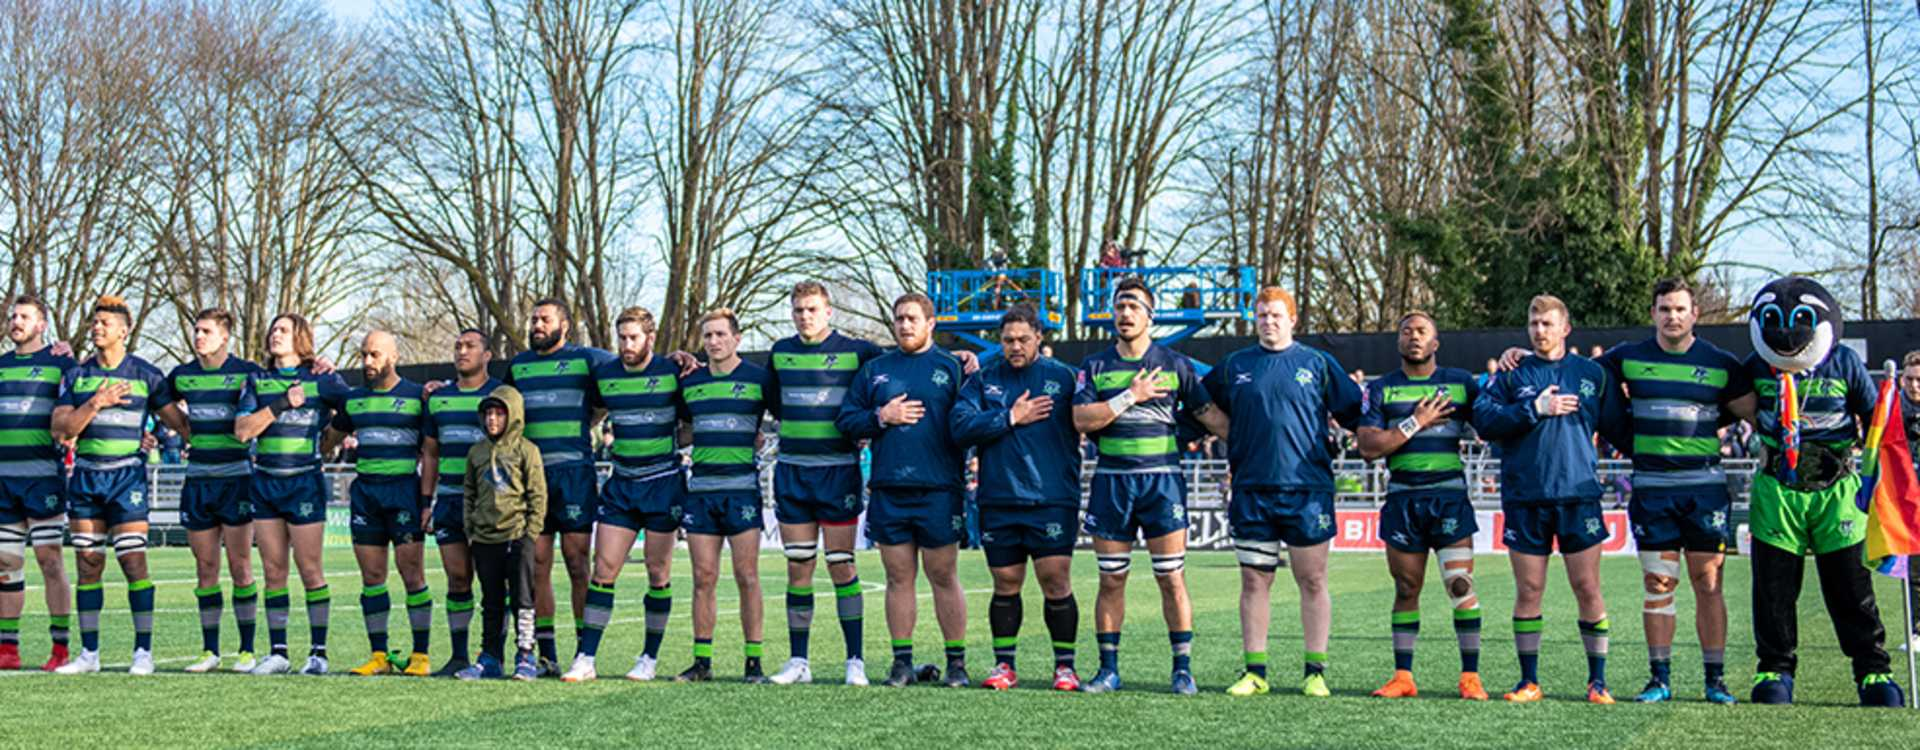 Seattle Seawolves Team